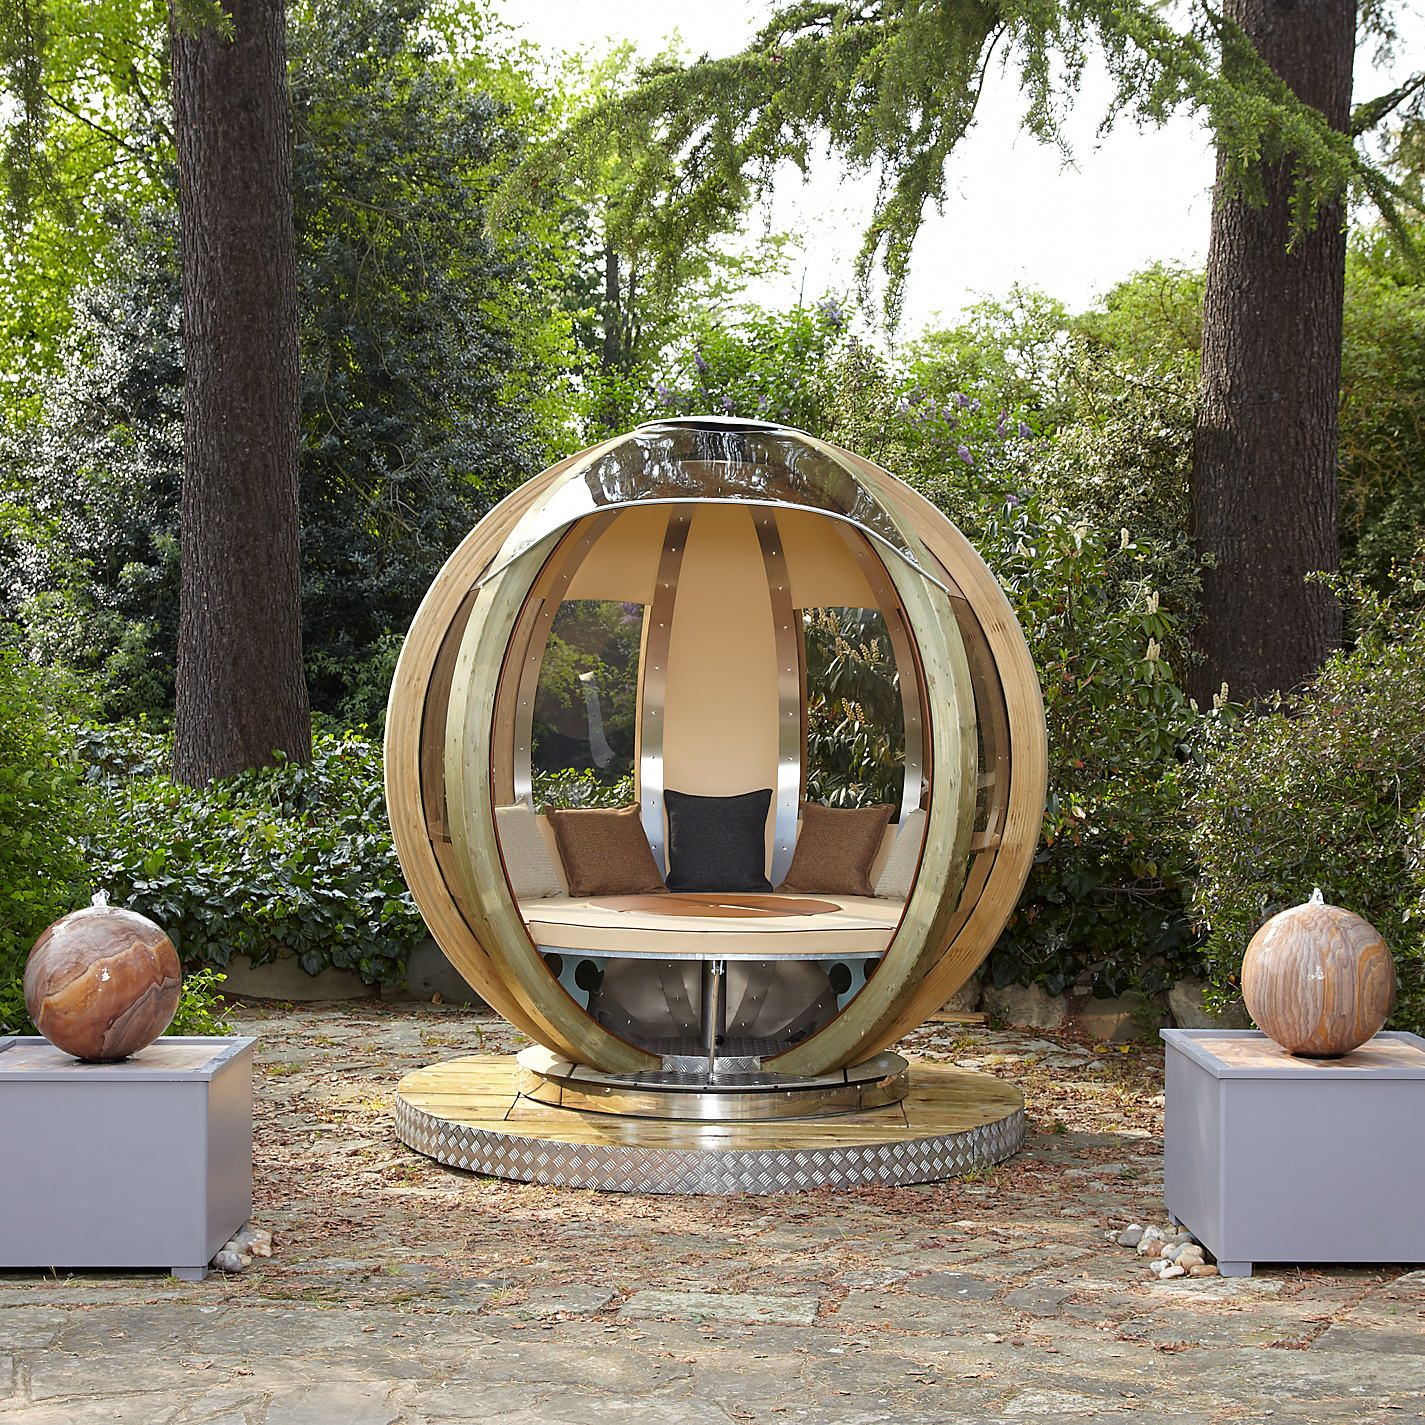 Garden Furniture Pod eat, study, or chill in the amazing rotatable glass garden pods